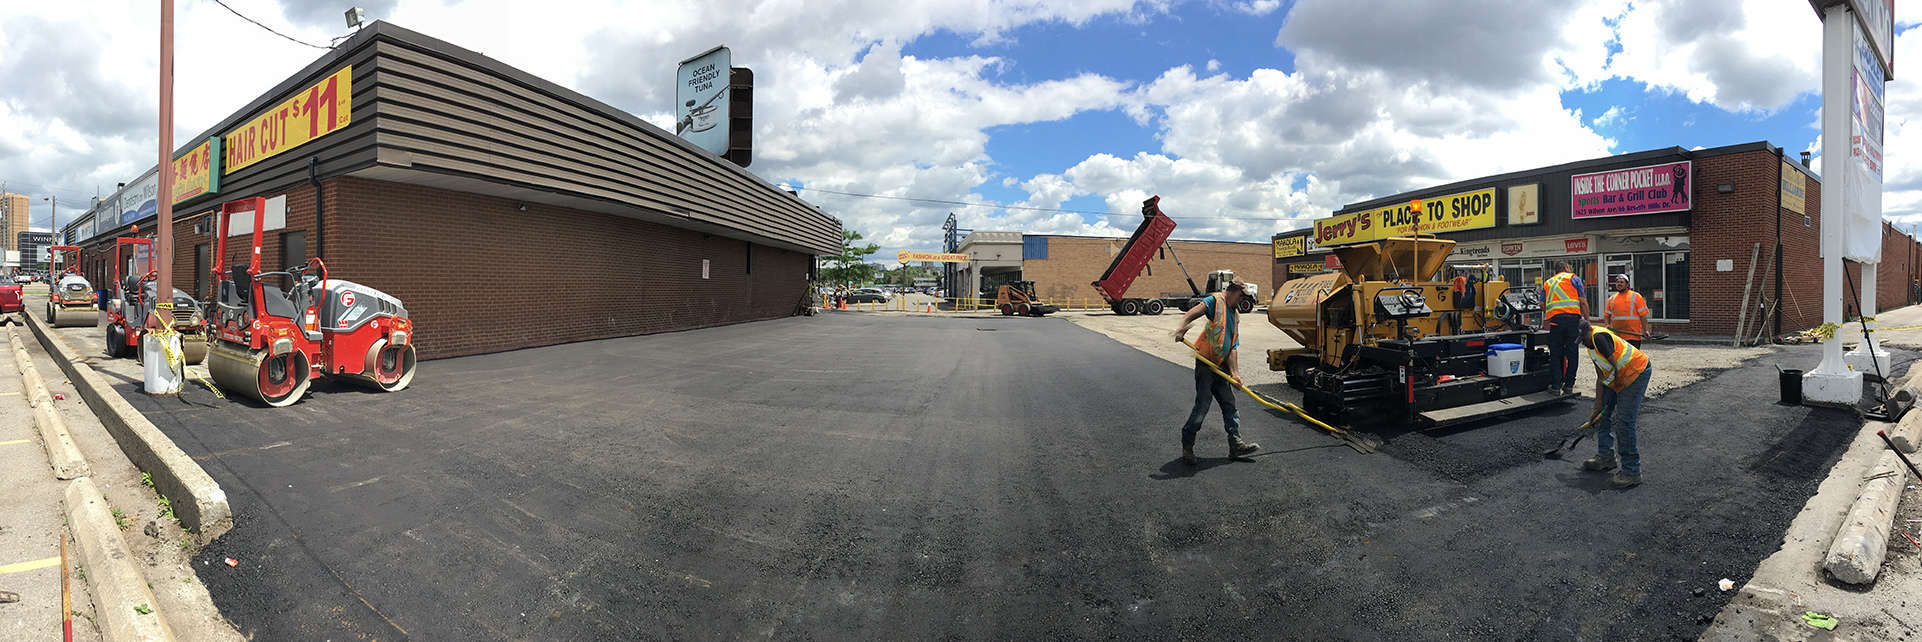 Paving Comany Future Paving Asphalt Parking Lot Jerry's